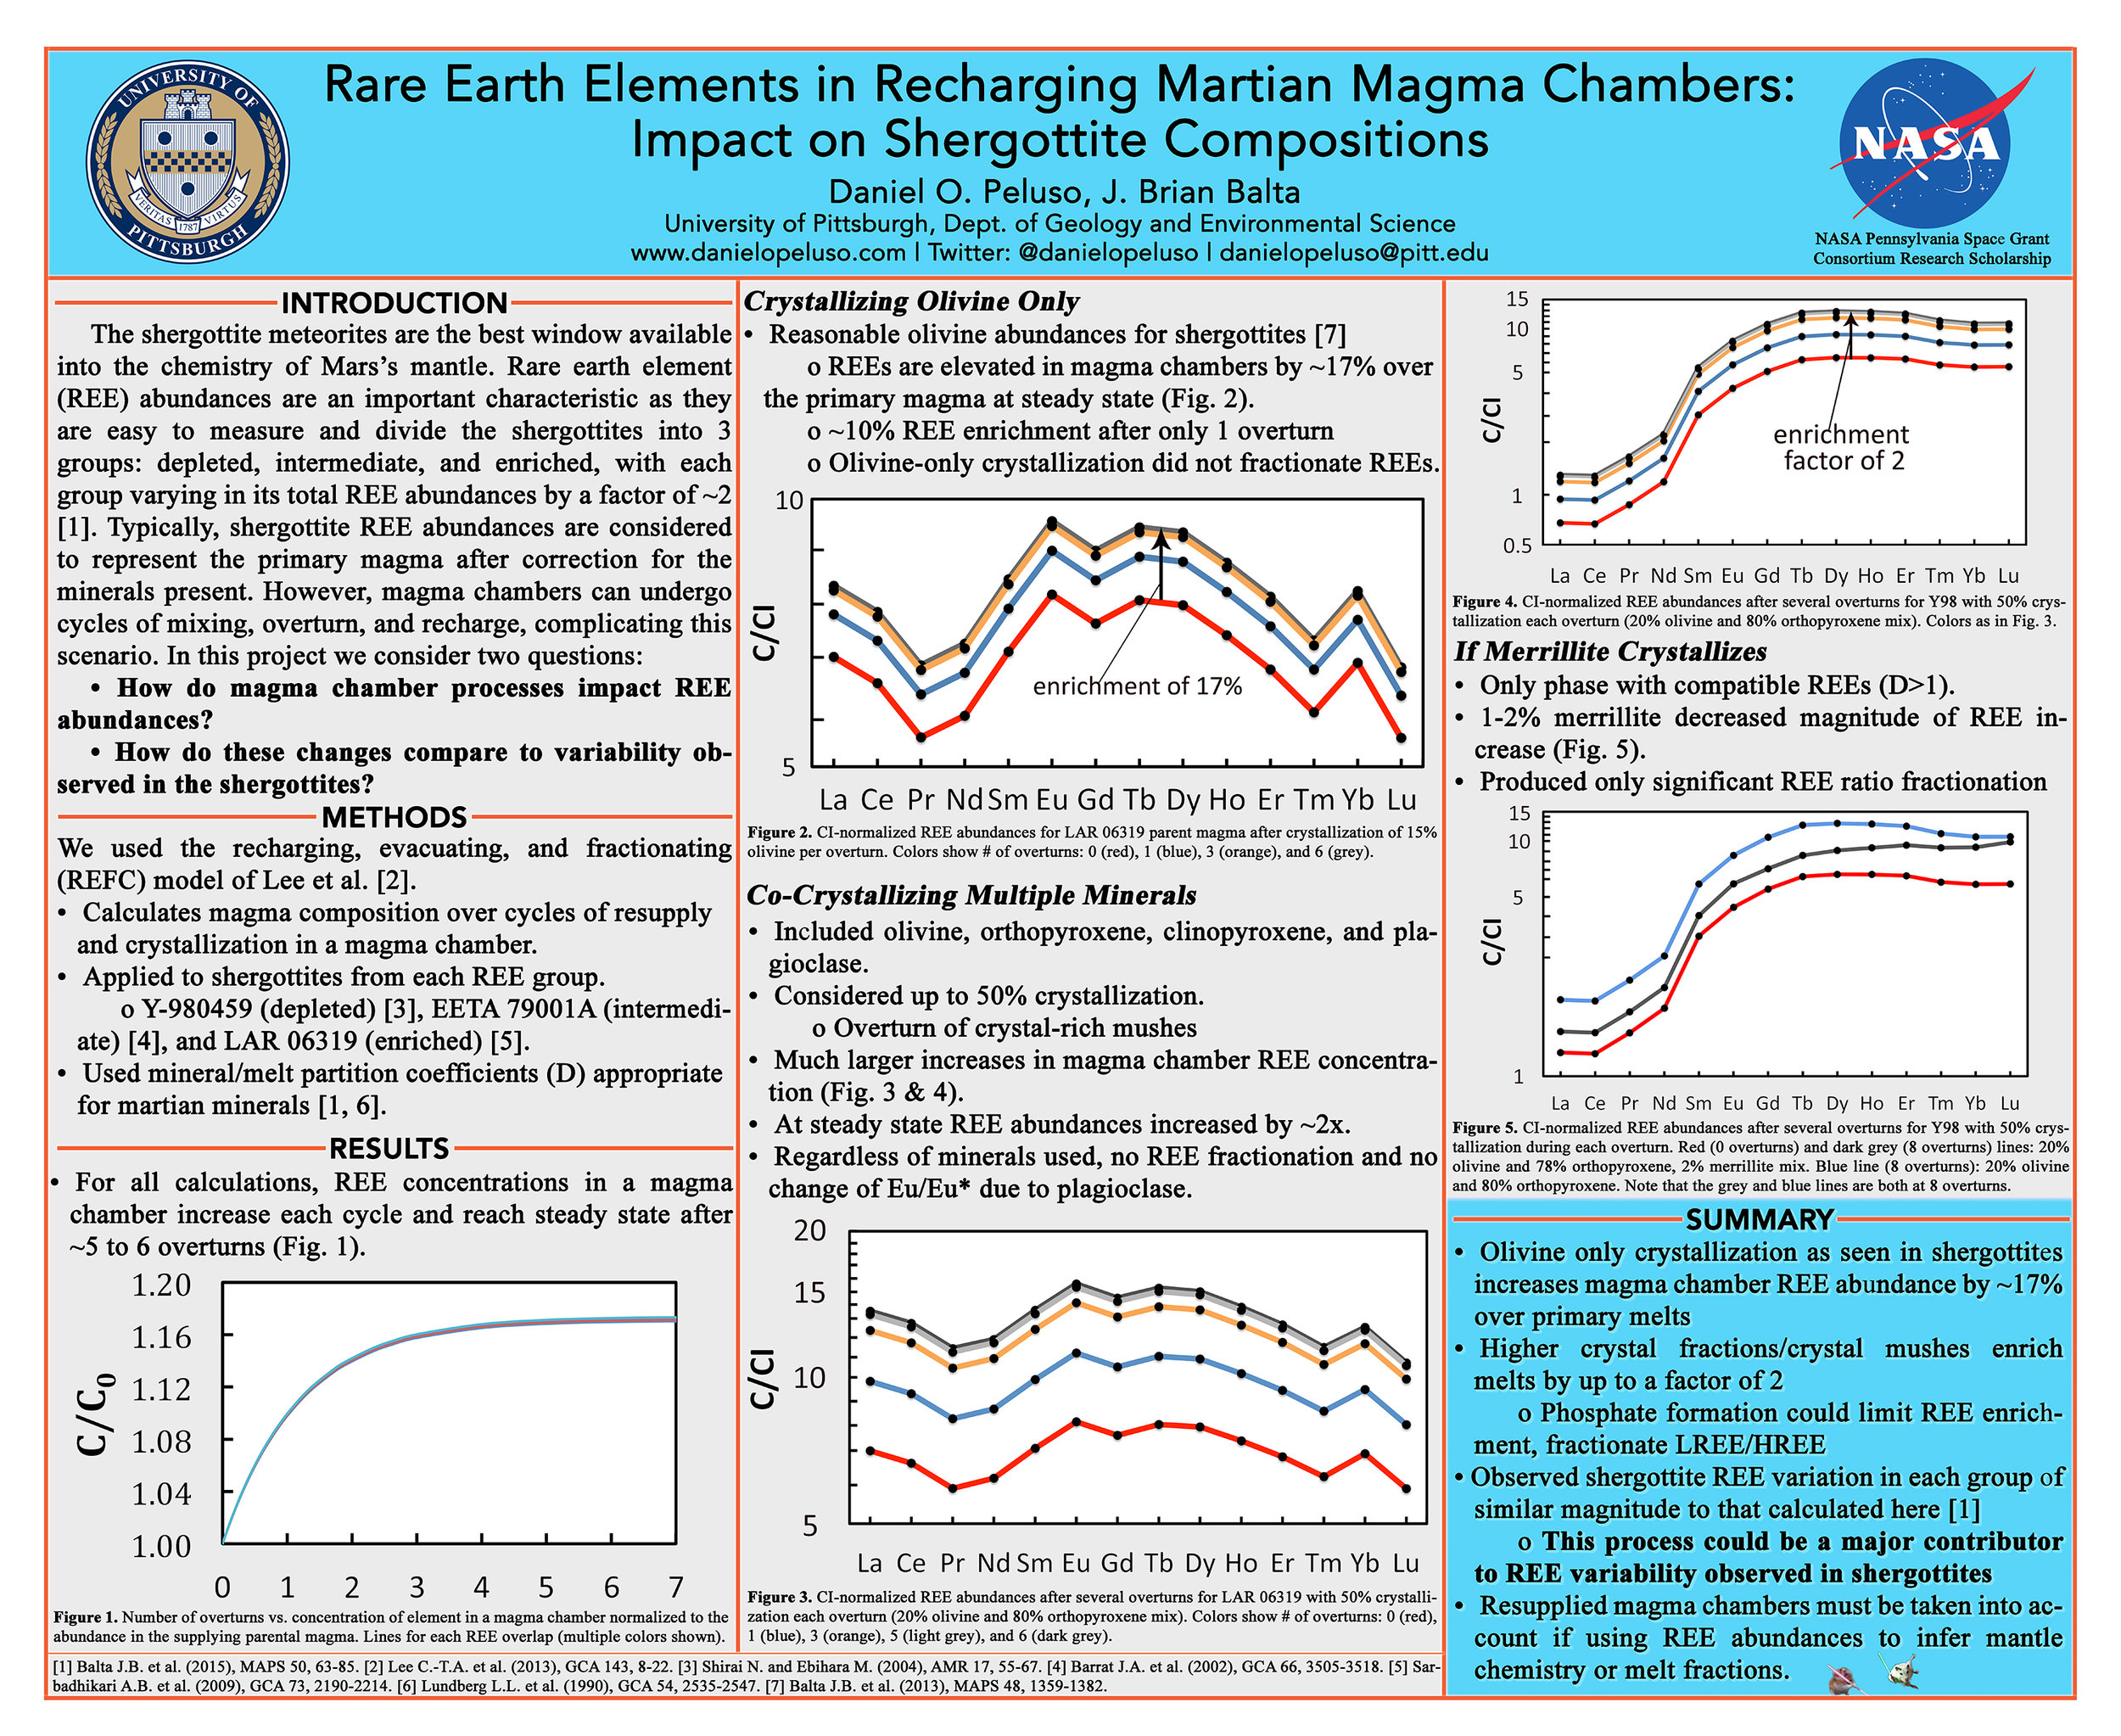 Research poster I created and presented at the 47th Lunar and Planetary Science Conference in The Woodlands, TX in March 2016. It presents planetary science research I conducted while at the University of Pittsburgh with Dr. J. Brian Balta.